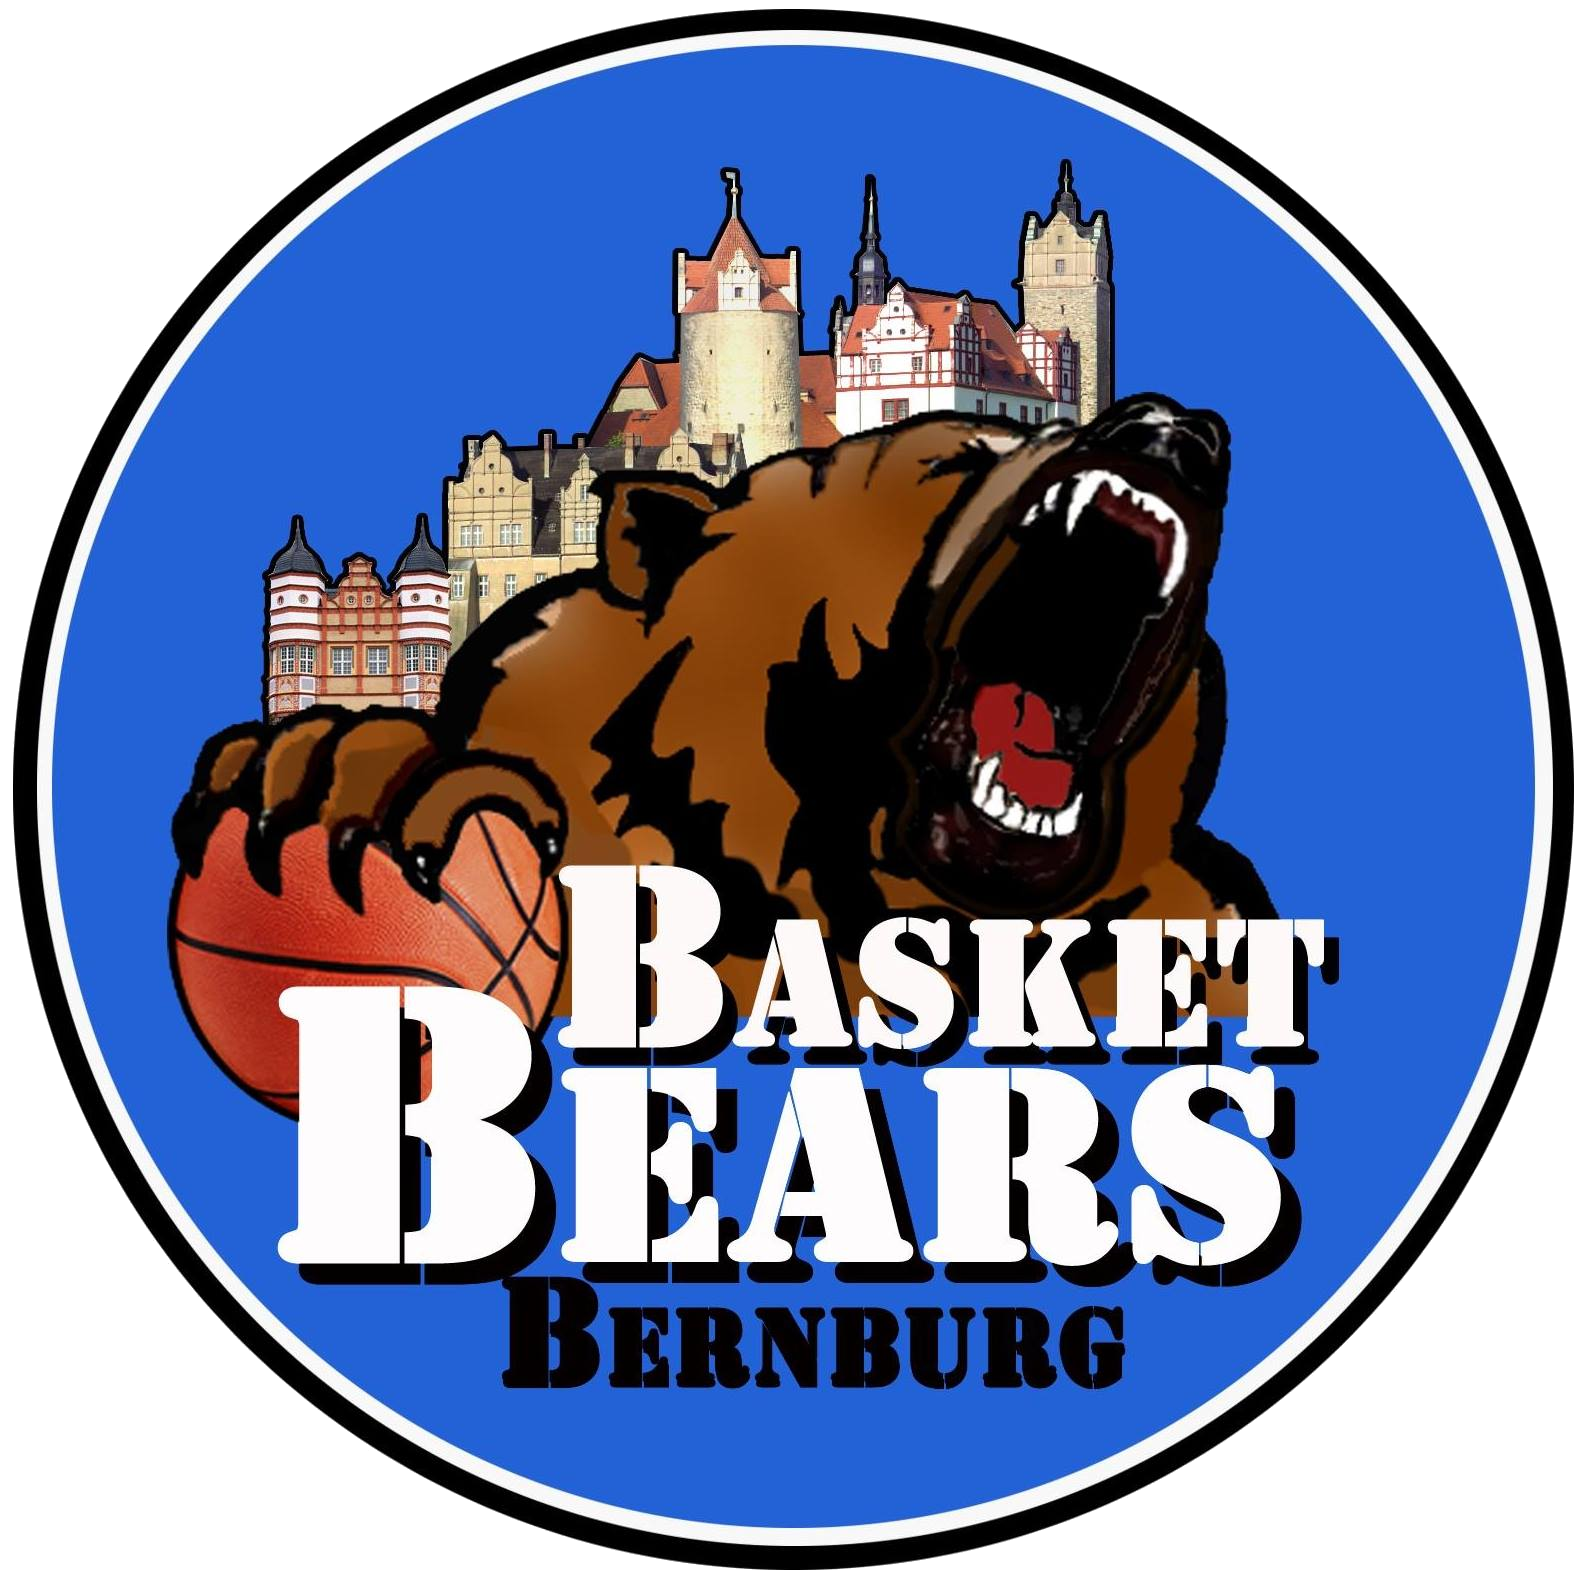 Basketball Bernburg Bears